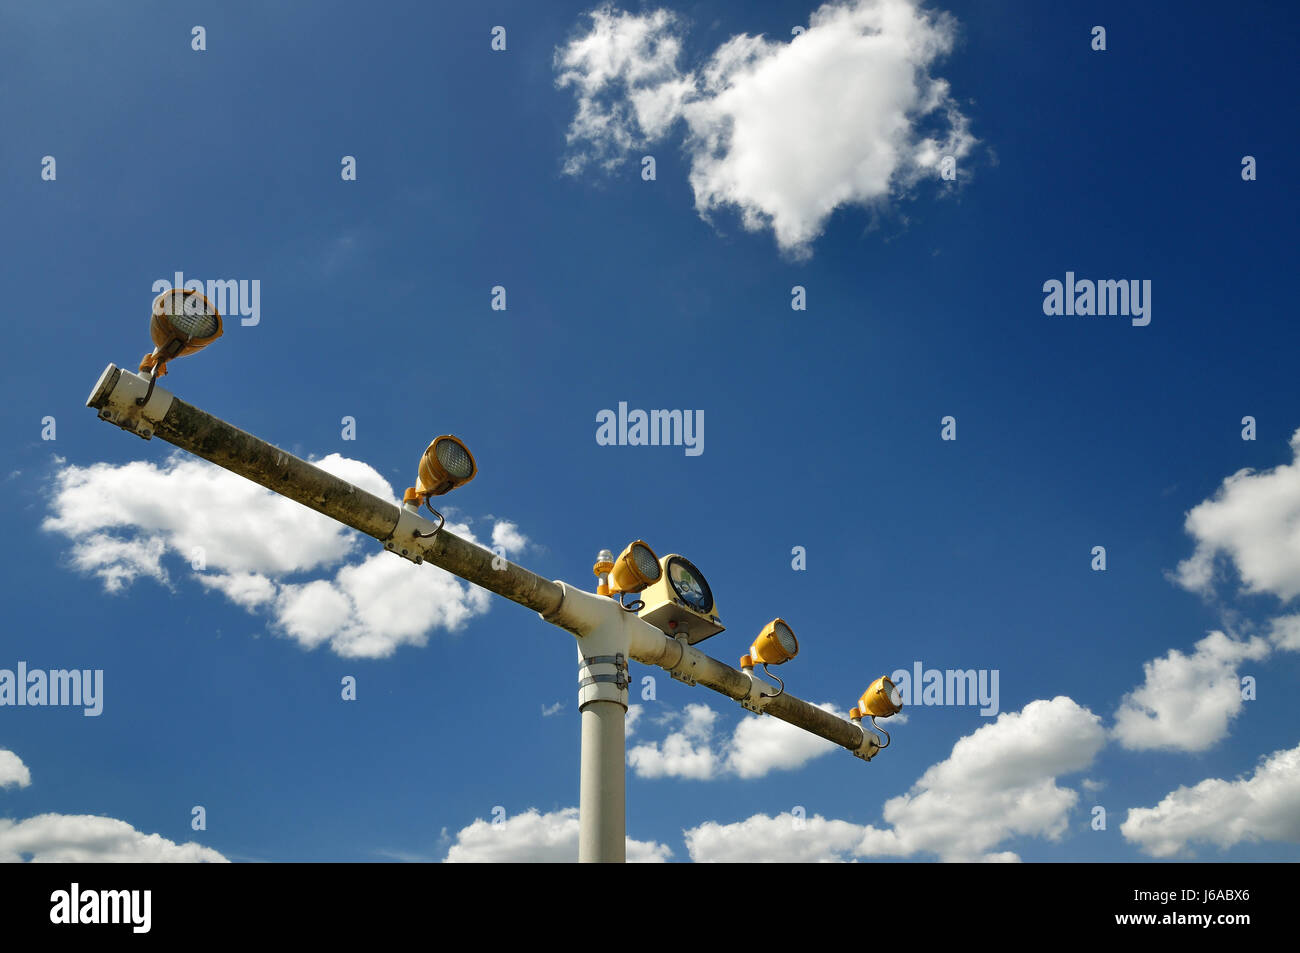 lamps approach flight beaconing runway airport air traffic air safety system of Stock Photo